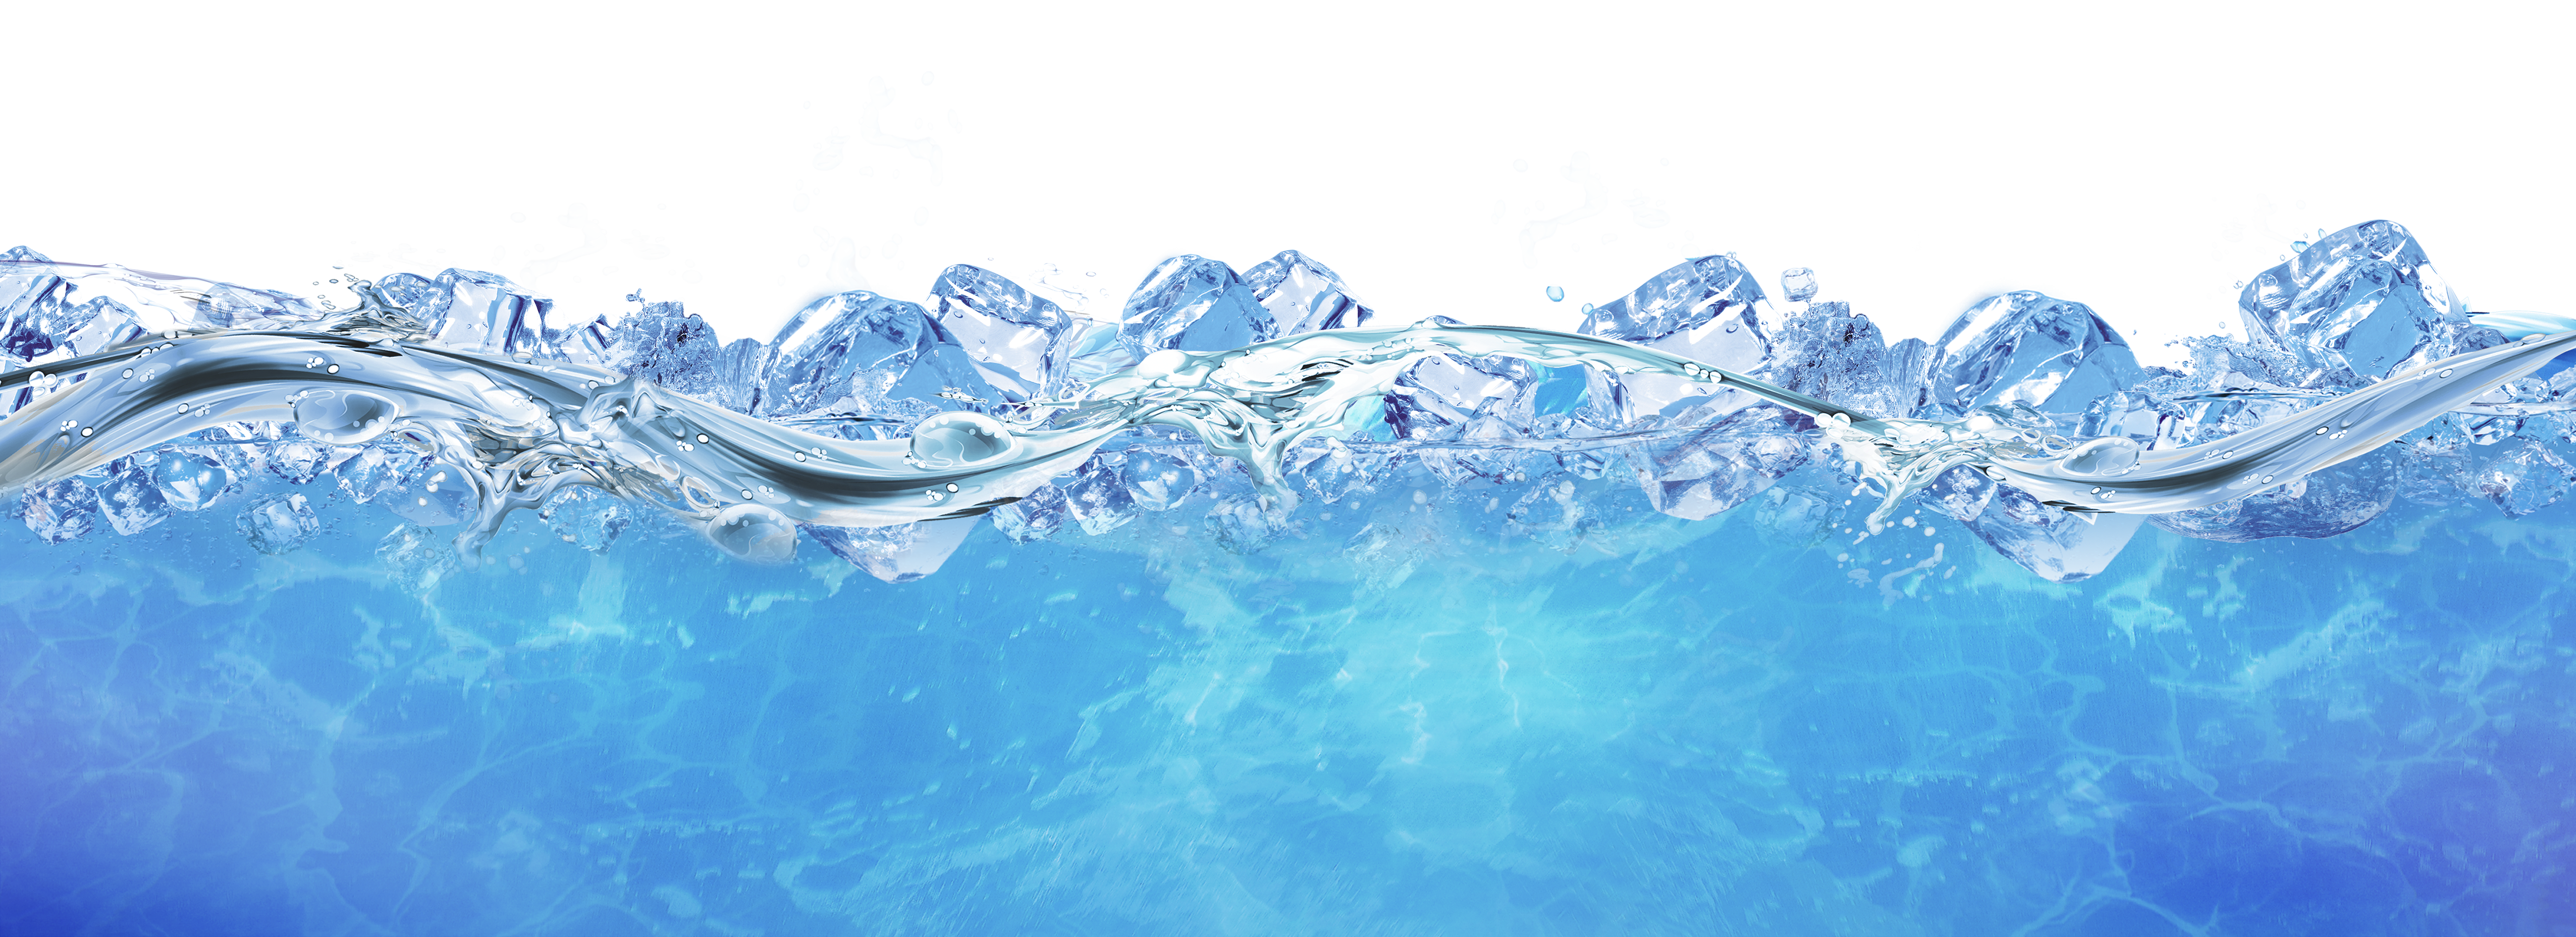 Water texture png. Blue ice floats on